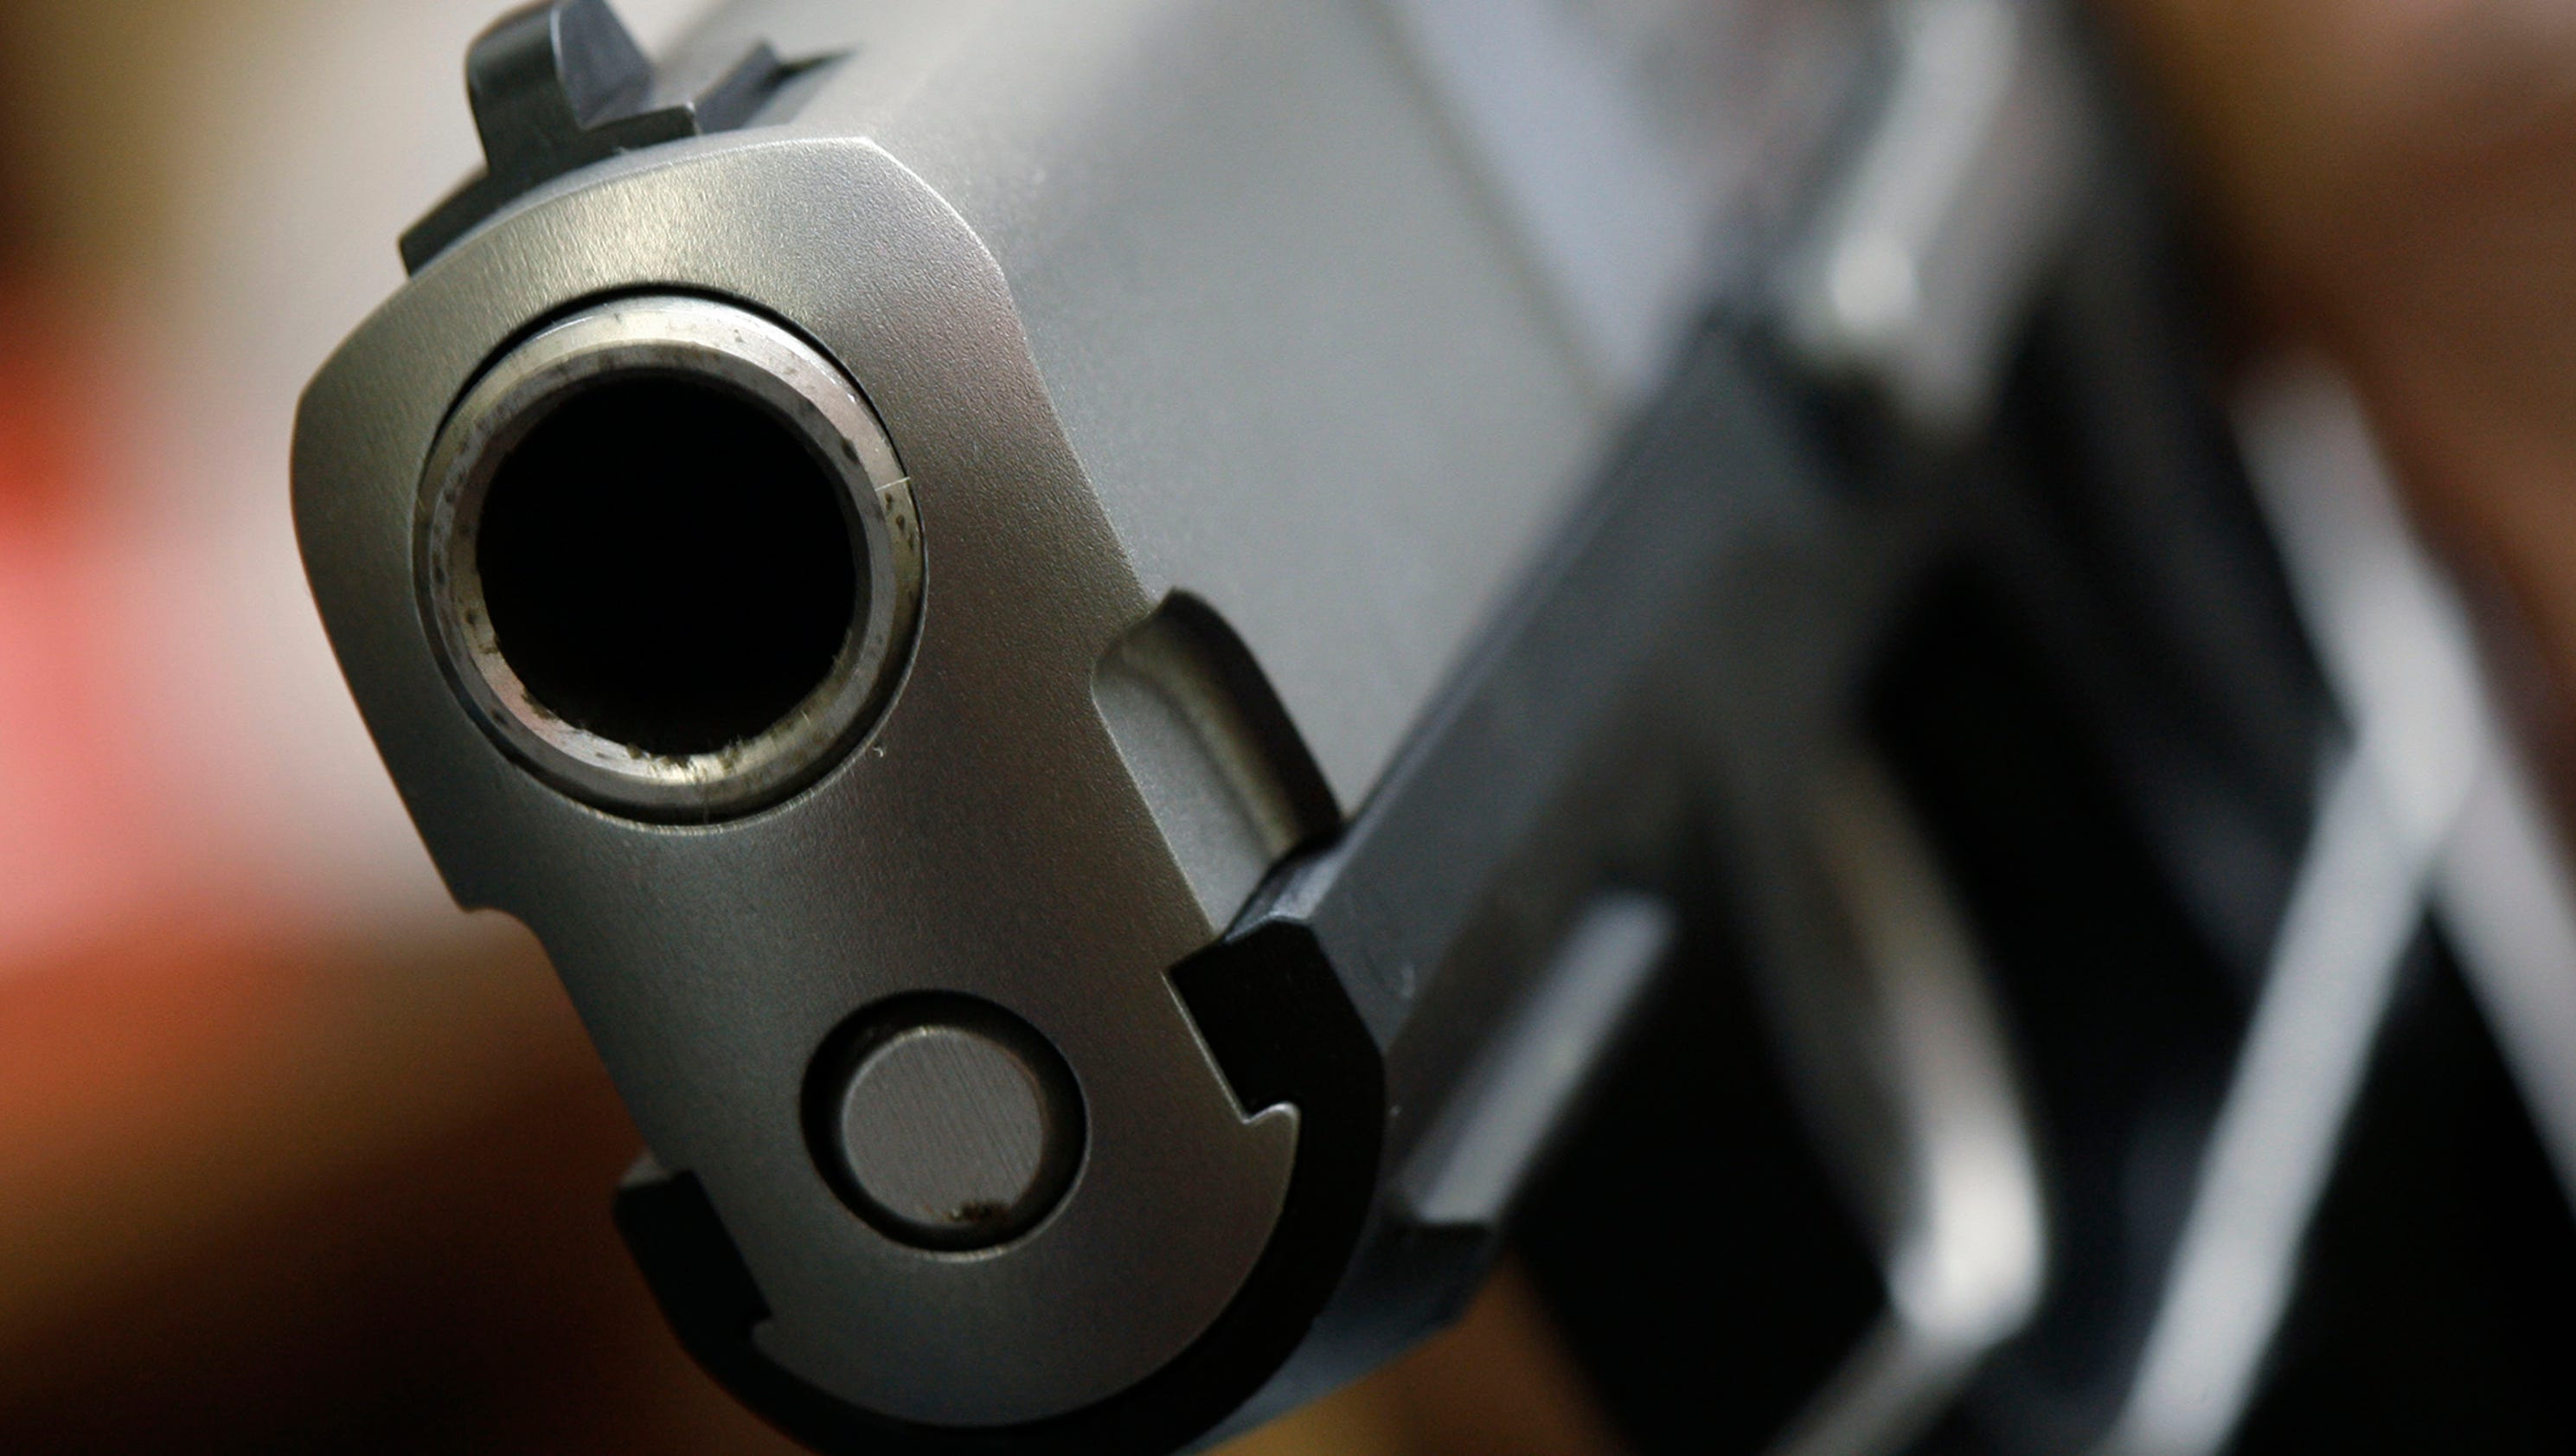 Girl, 13, allegedly shot by brother, 9, after video game argument